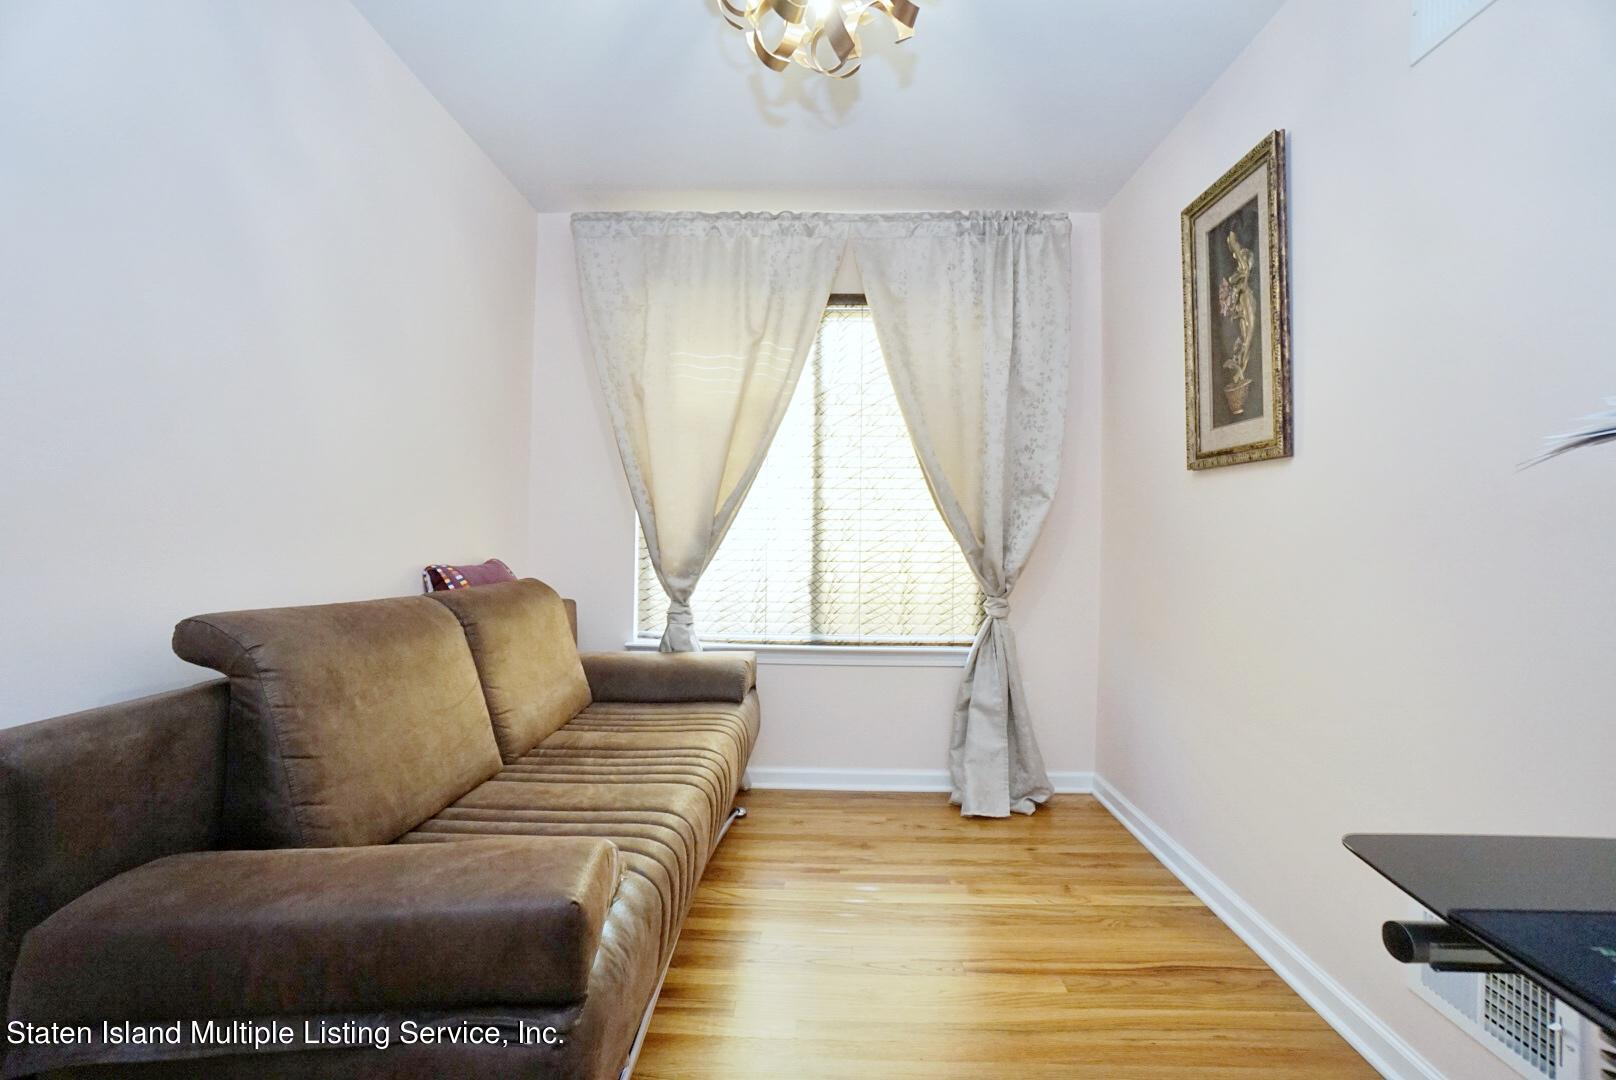 Single Family - Detached 171 Benziger Avenue  Staten Island, NY 10301, MLS-1145235-29